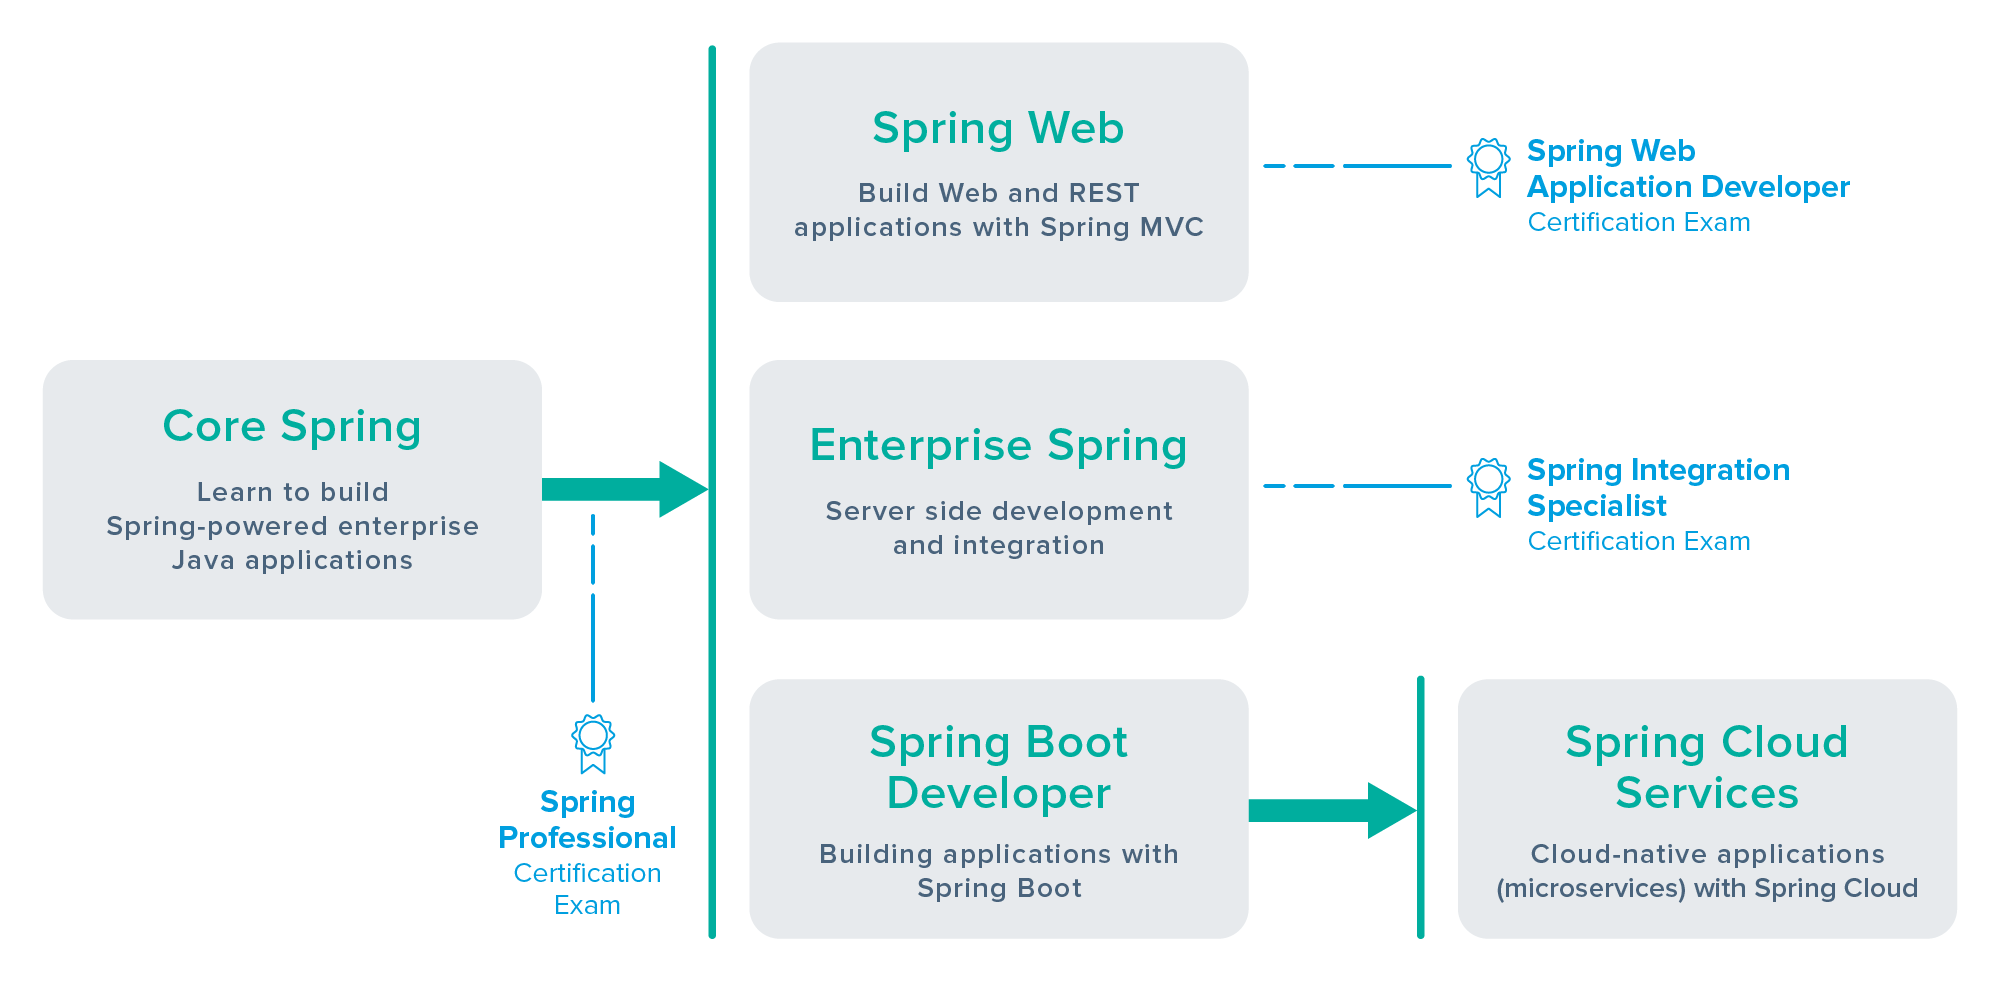 Pivotal announces spring curriculum certification changes spring learning path pooptronica Gallery